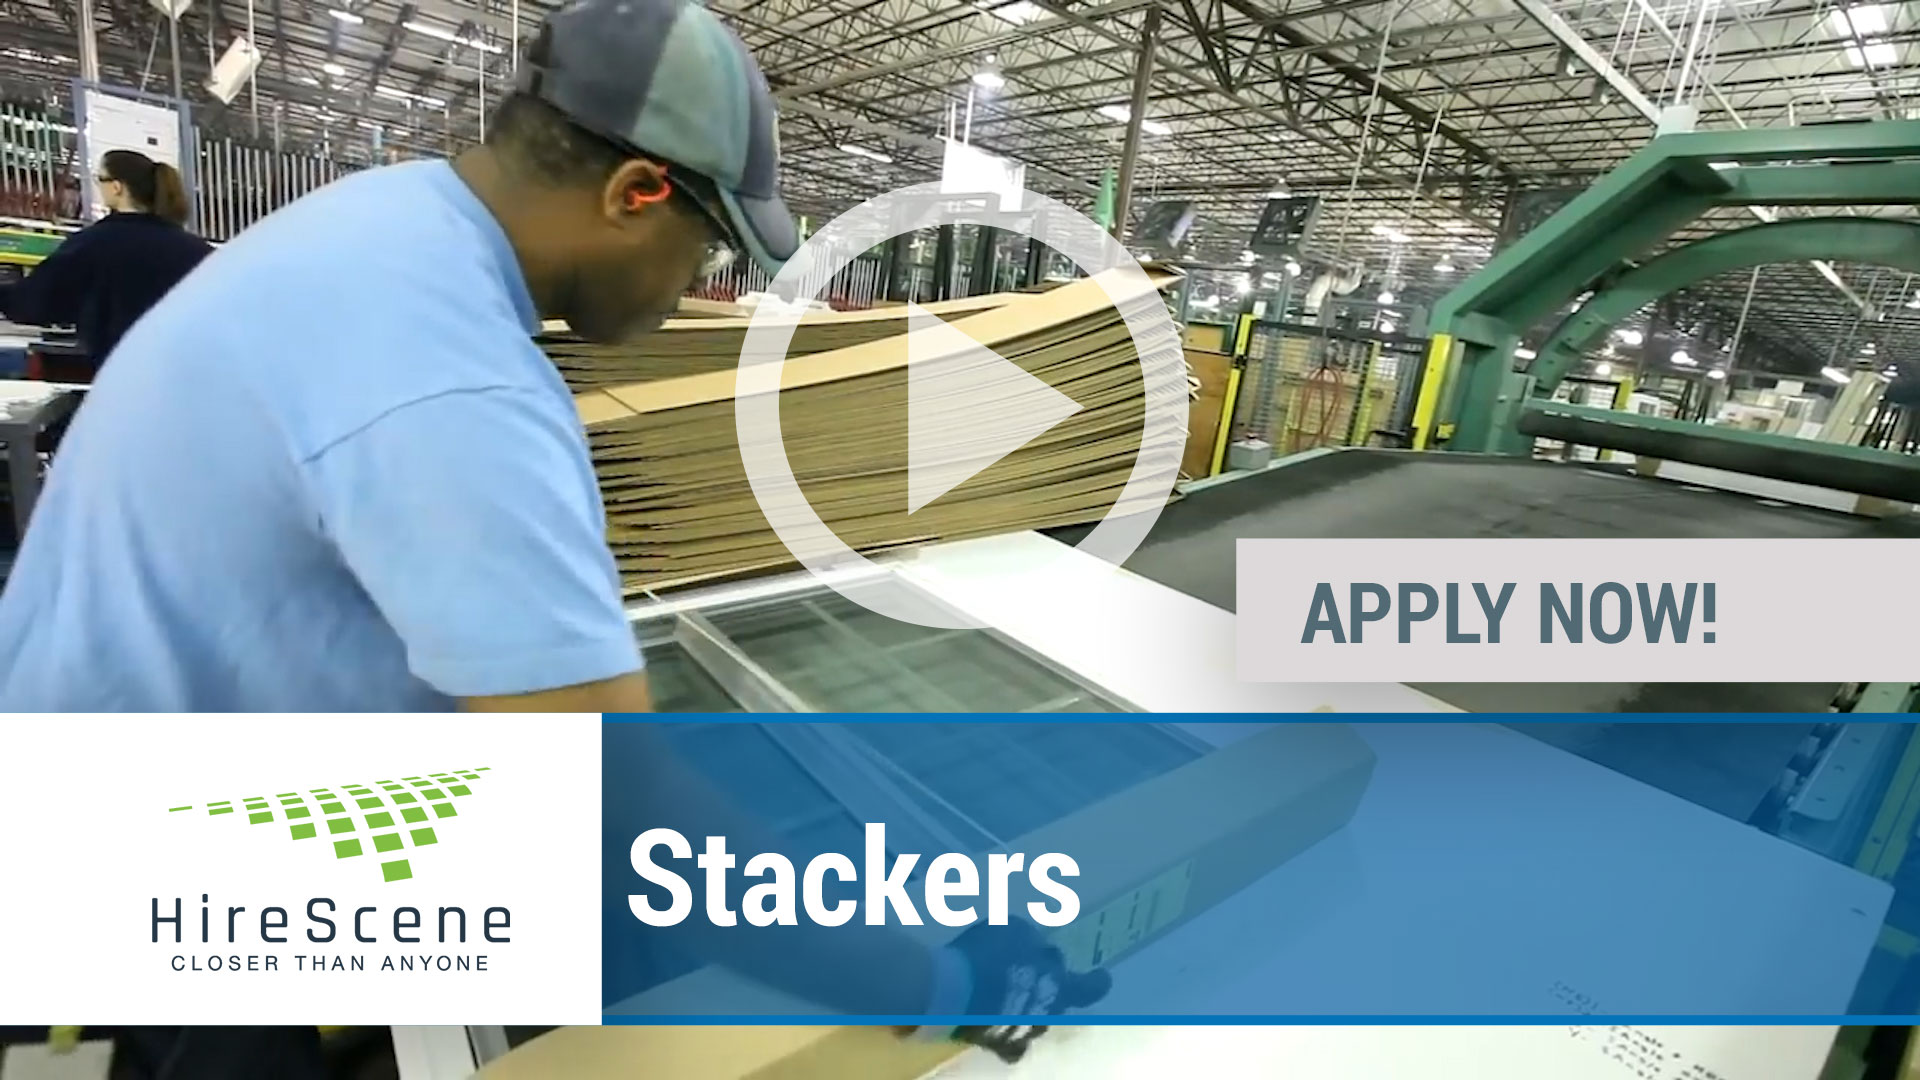 Watch our careers video for available job opening Stackers in Dallas, TX, USA